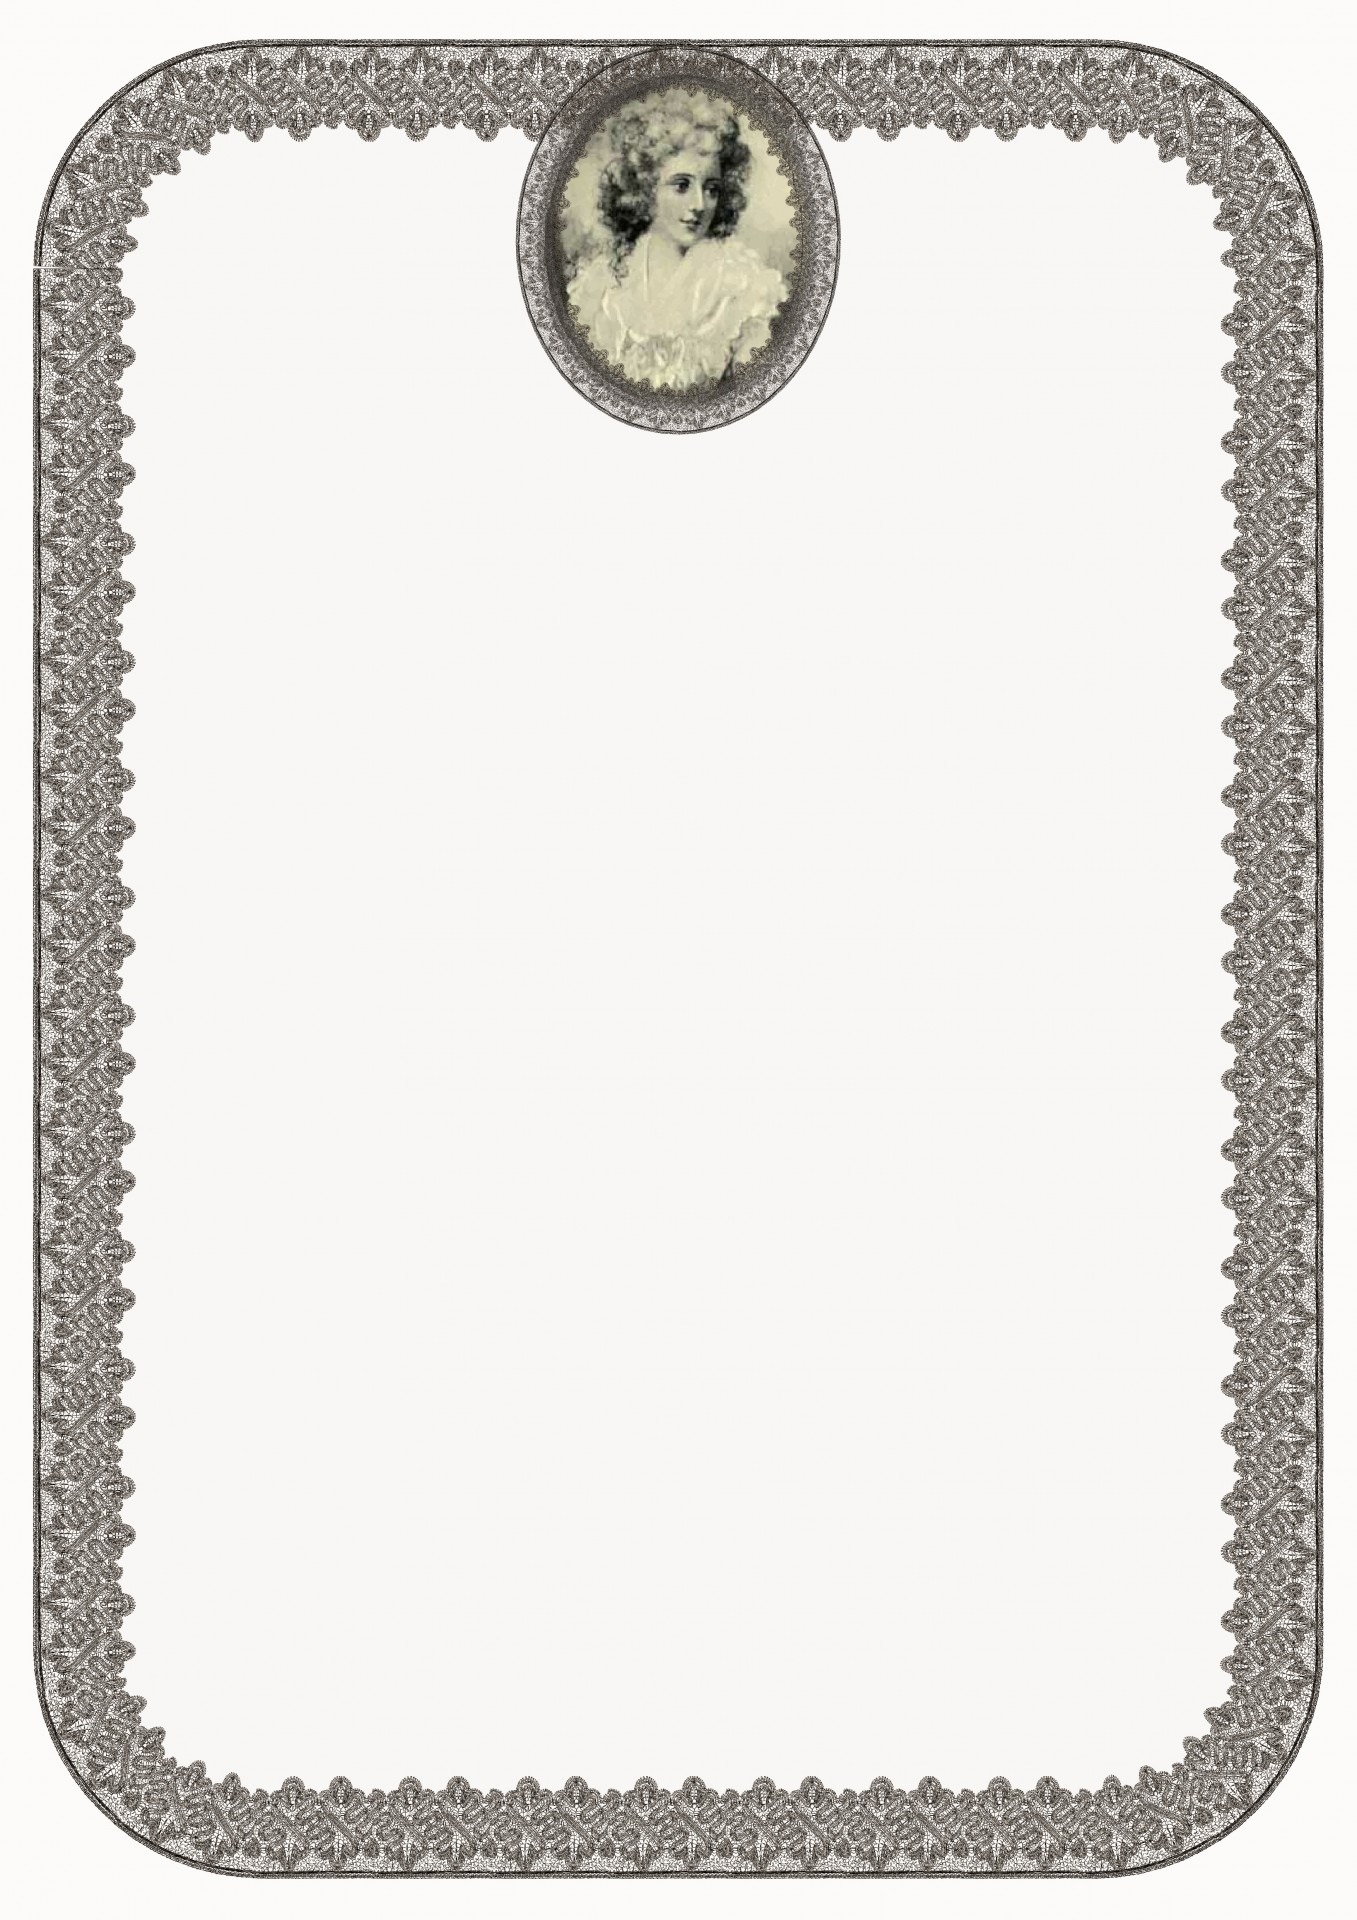 miniature lace border template sepia free photo from